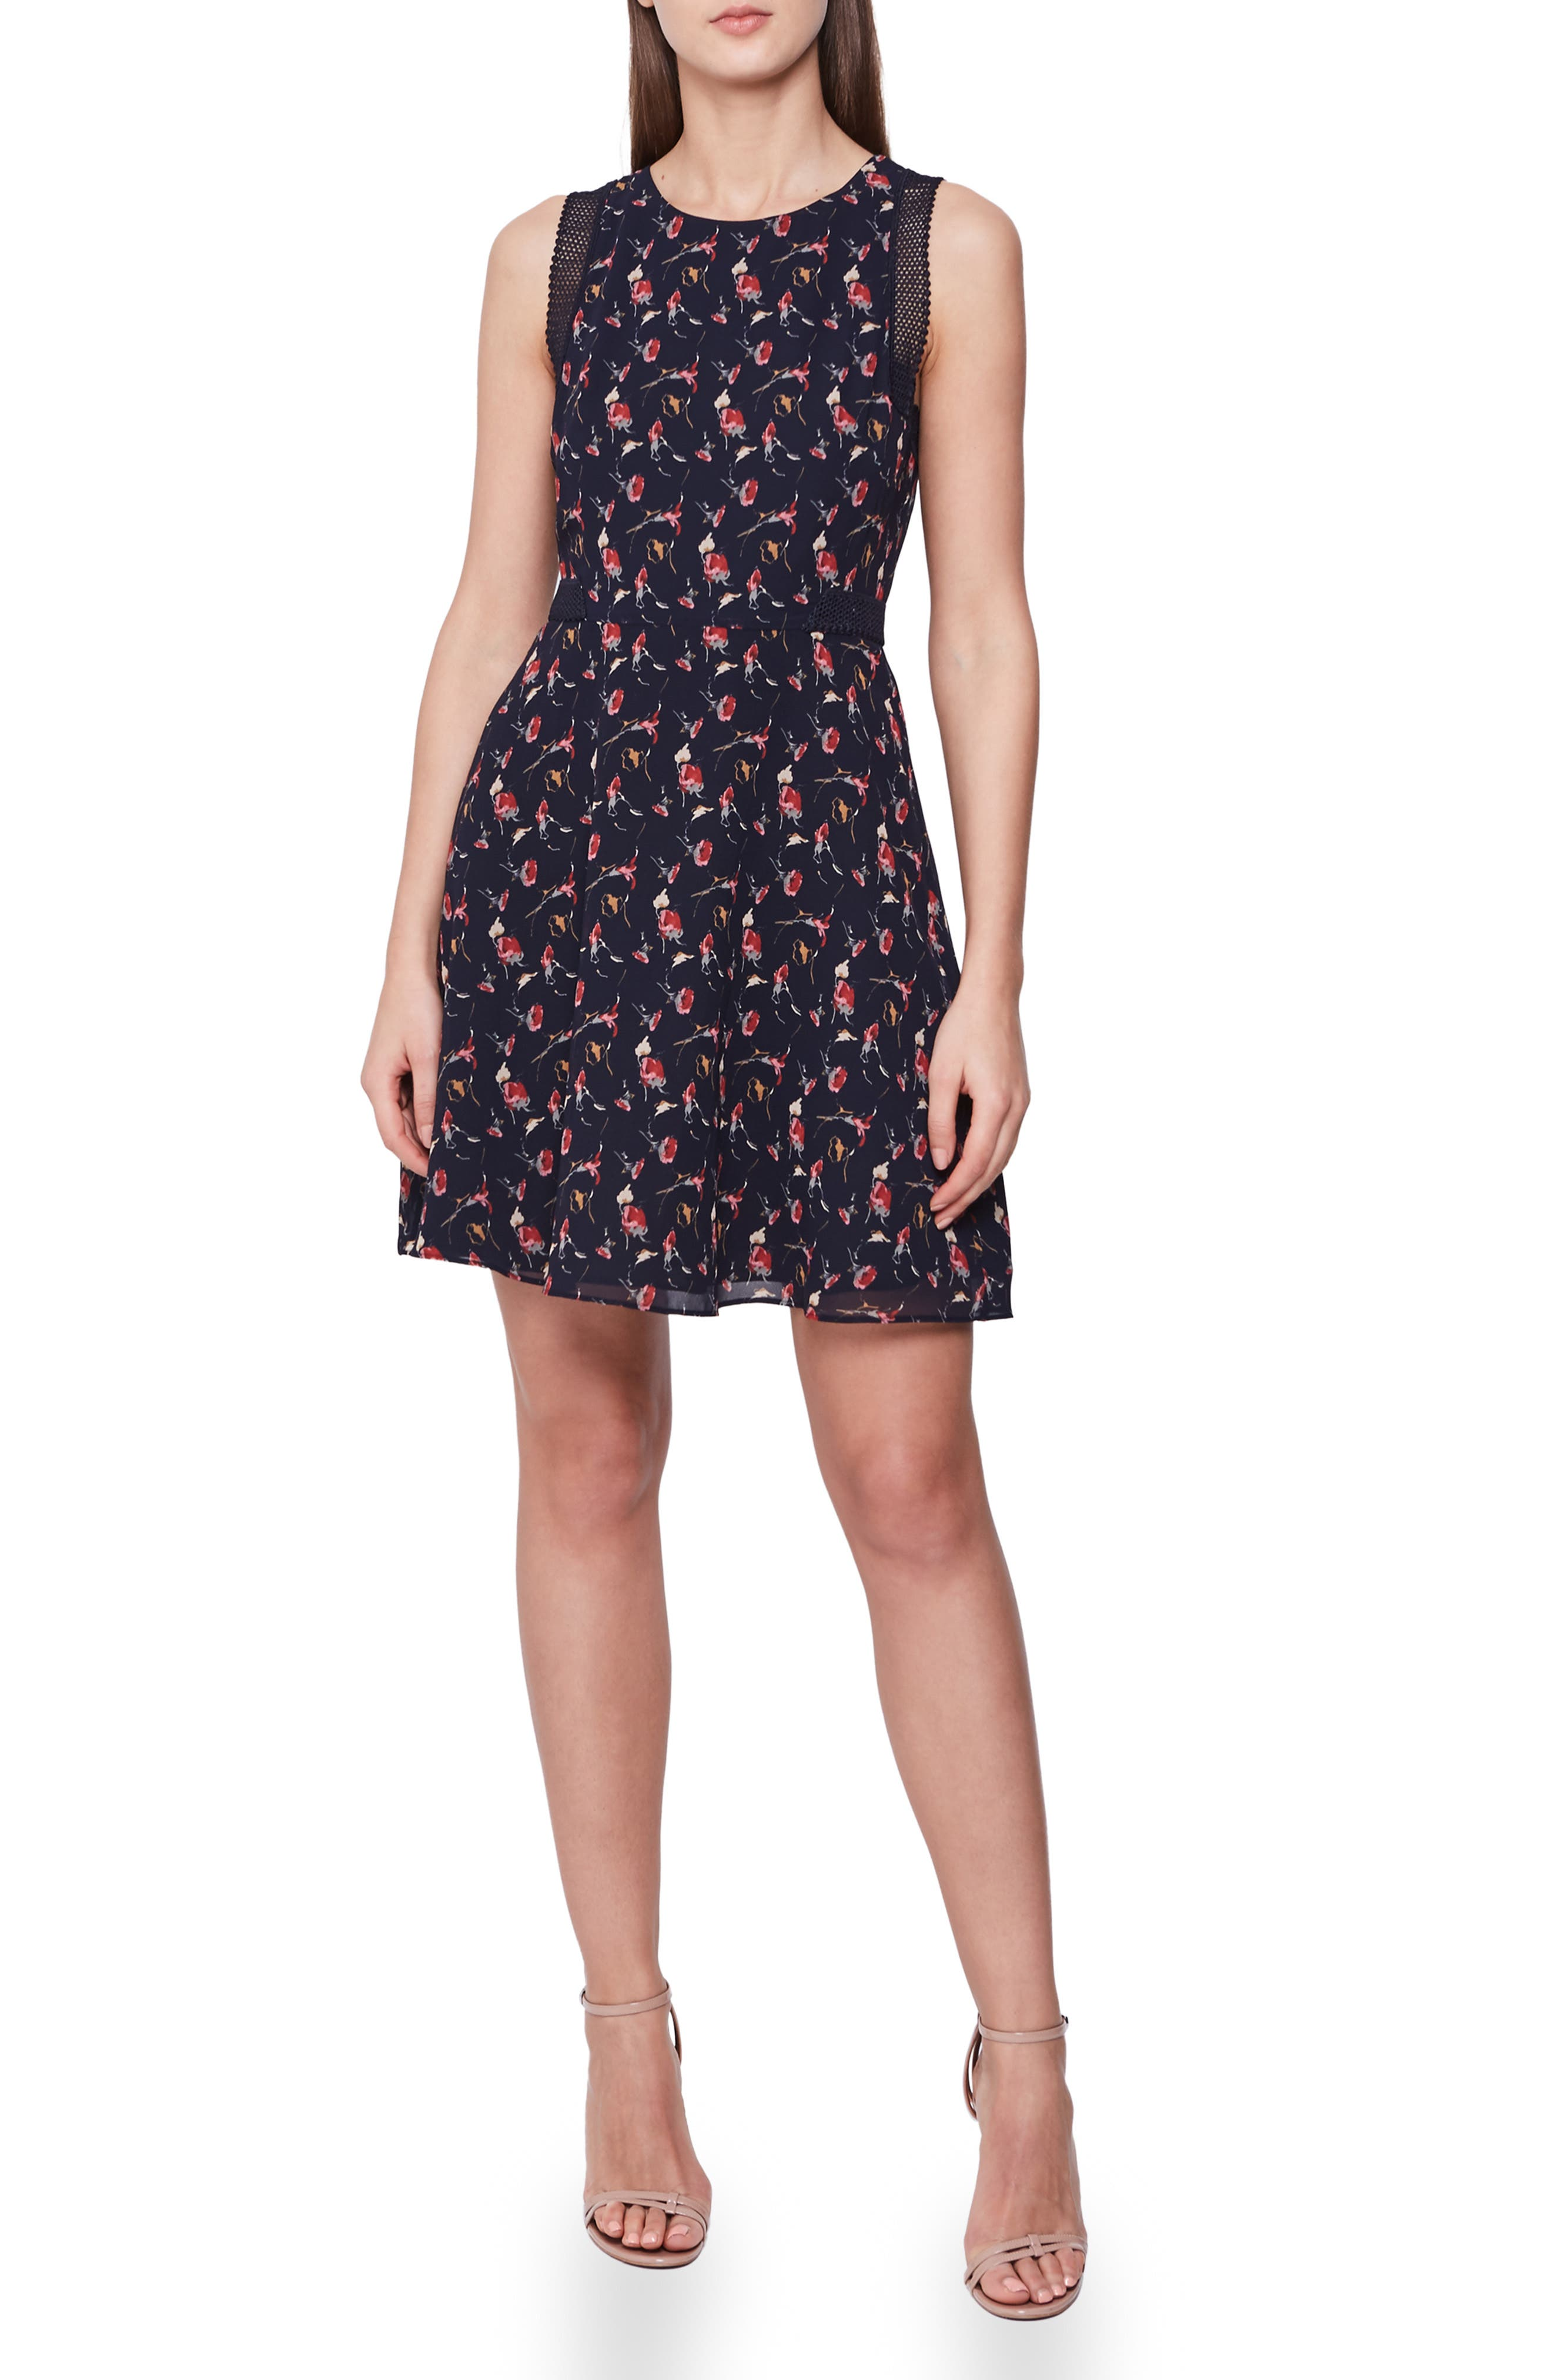 Reiss Louise Mesh Detail Floral Sleeveless Fit & Flare Dress, US / 6 UK - Black